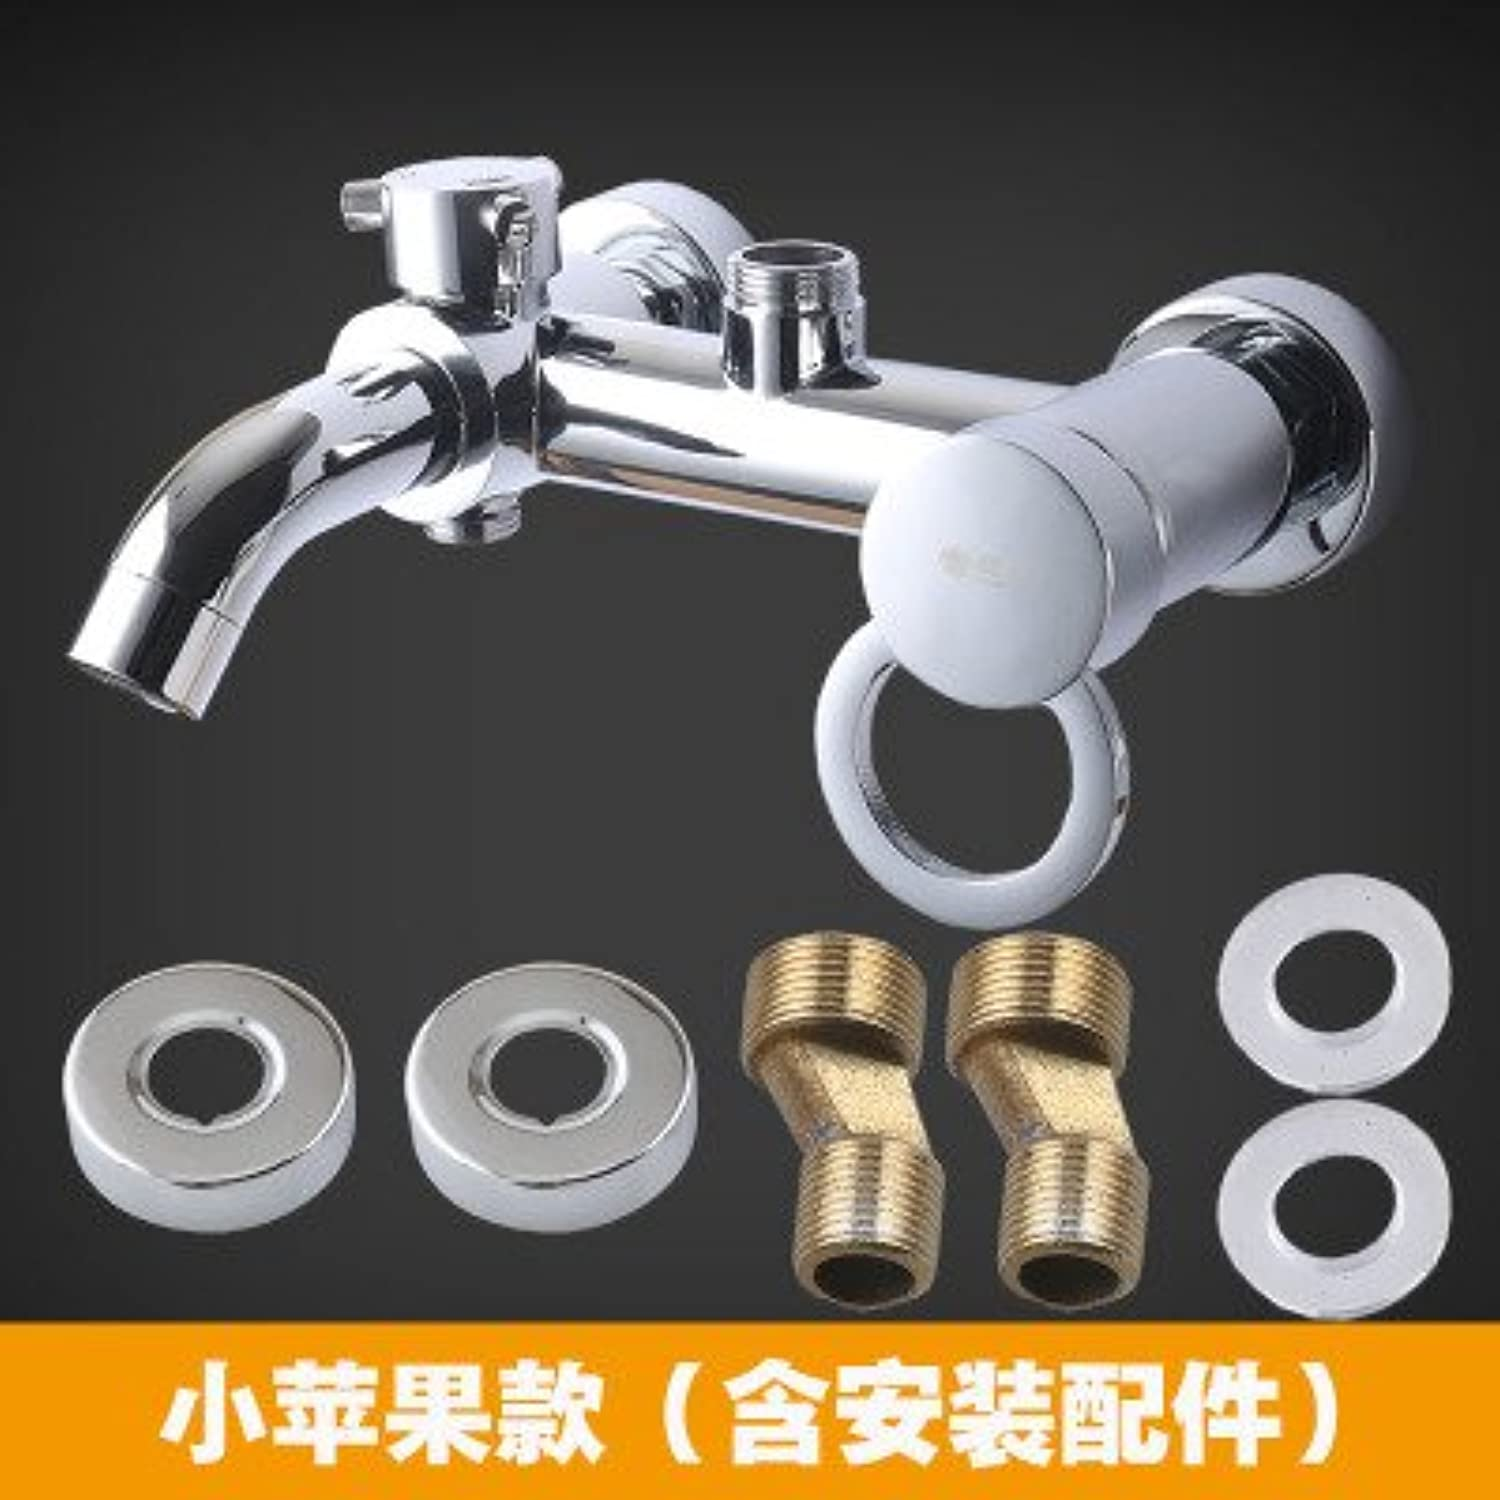 Gyps Faucet Sink Single Lever Mixer Tap Fitting for Bathroom Copper Adjustable into 3?Positions Shower Sink Water Mixing, Water with Water From The Little Apple Type.